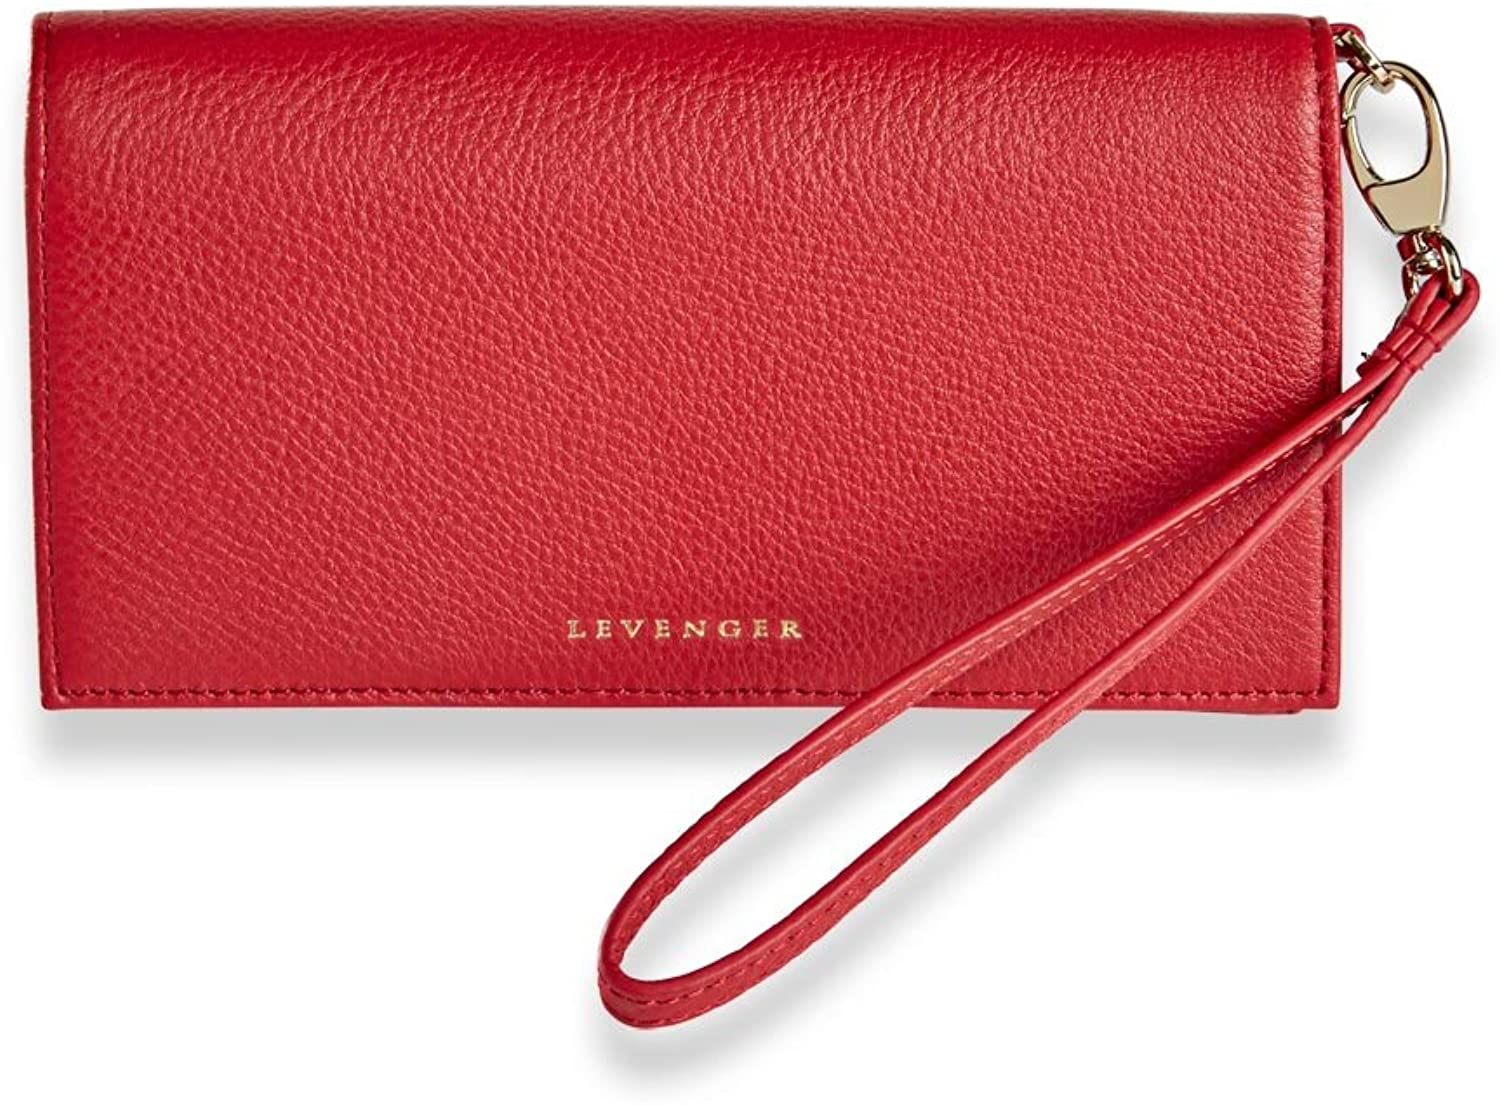 Levenger Sara Wristlet Luxurious Leather Snap Wallet, Red (AL14855 RD)